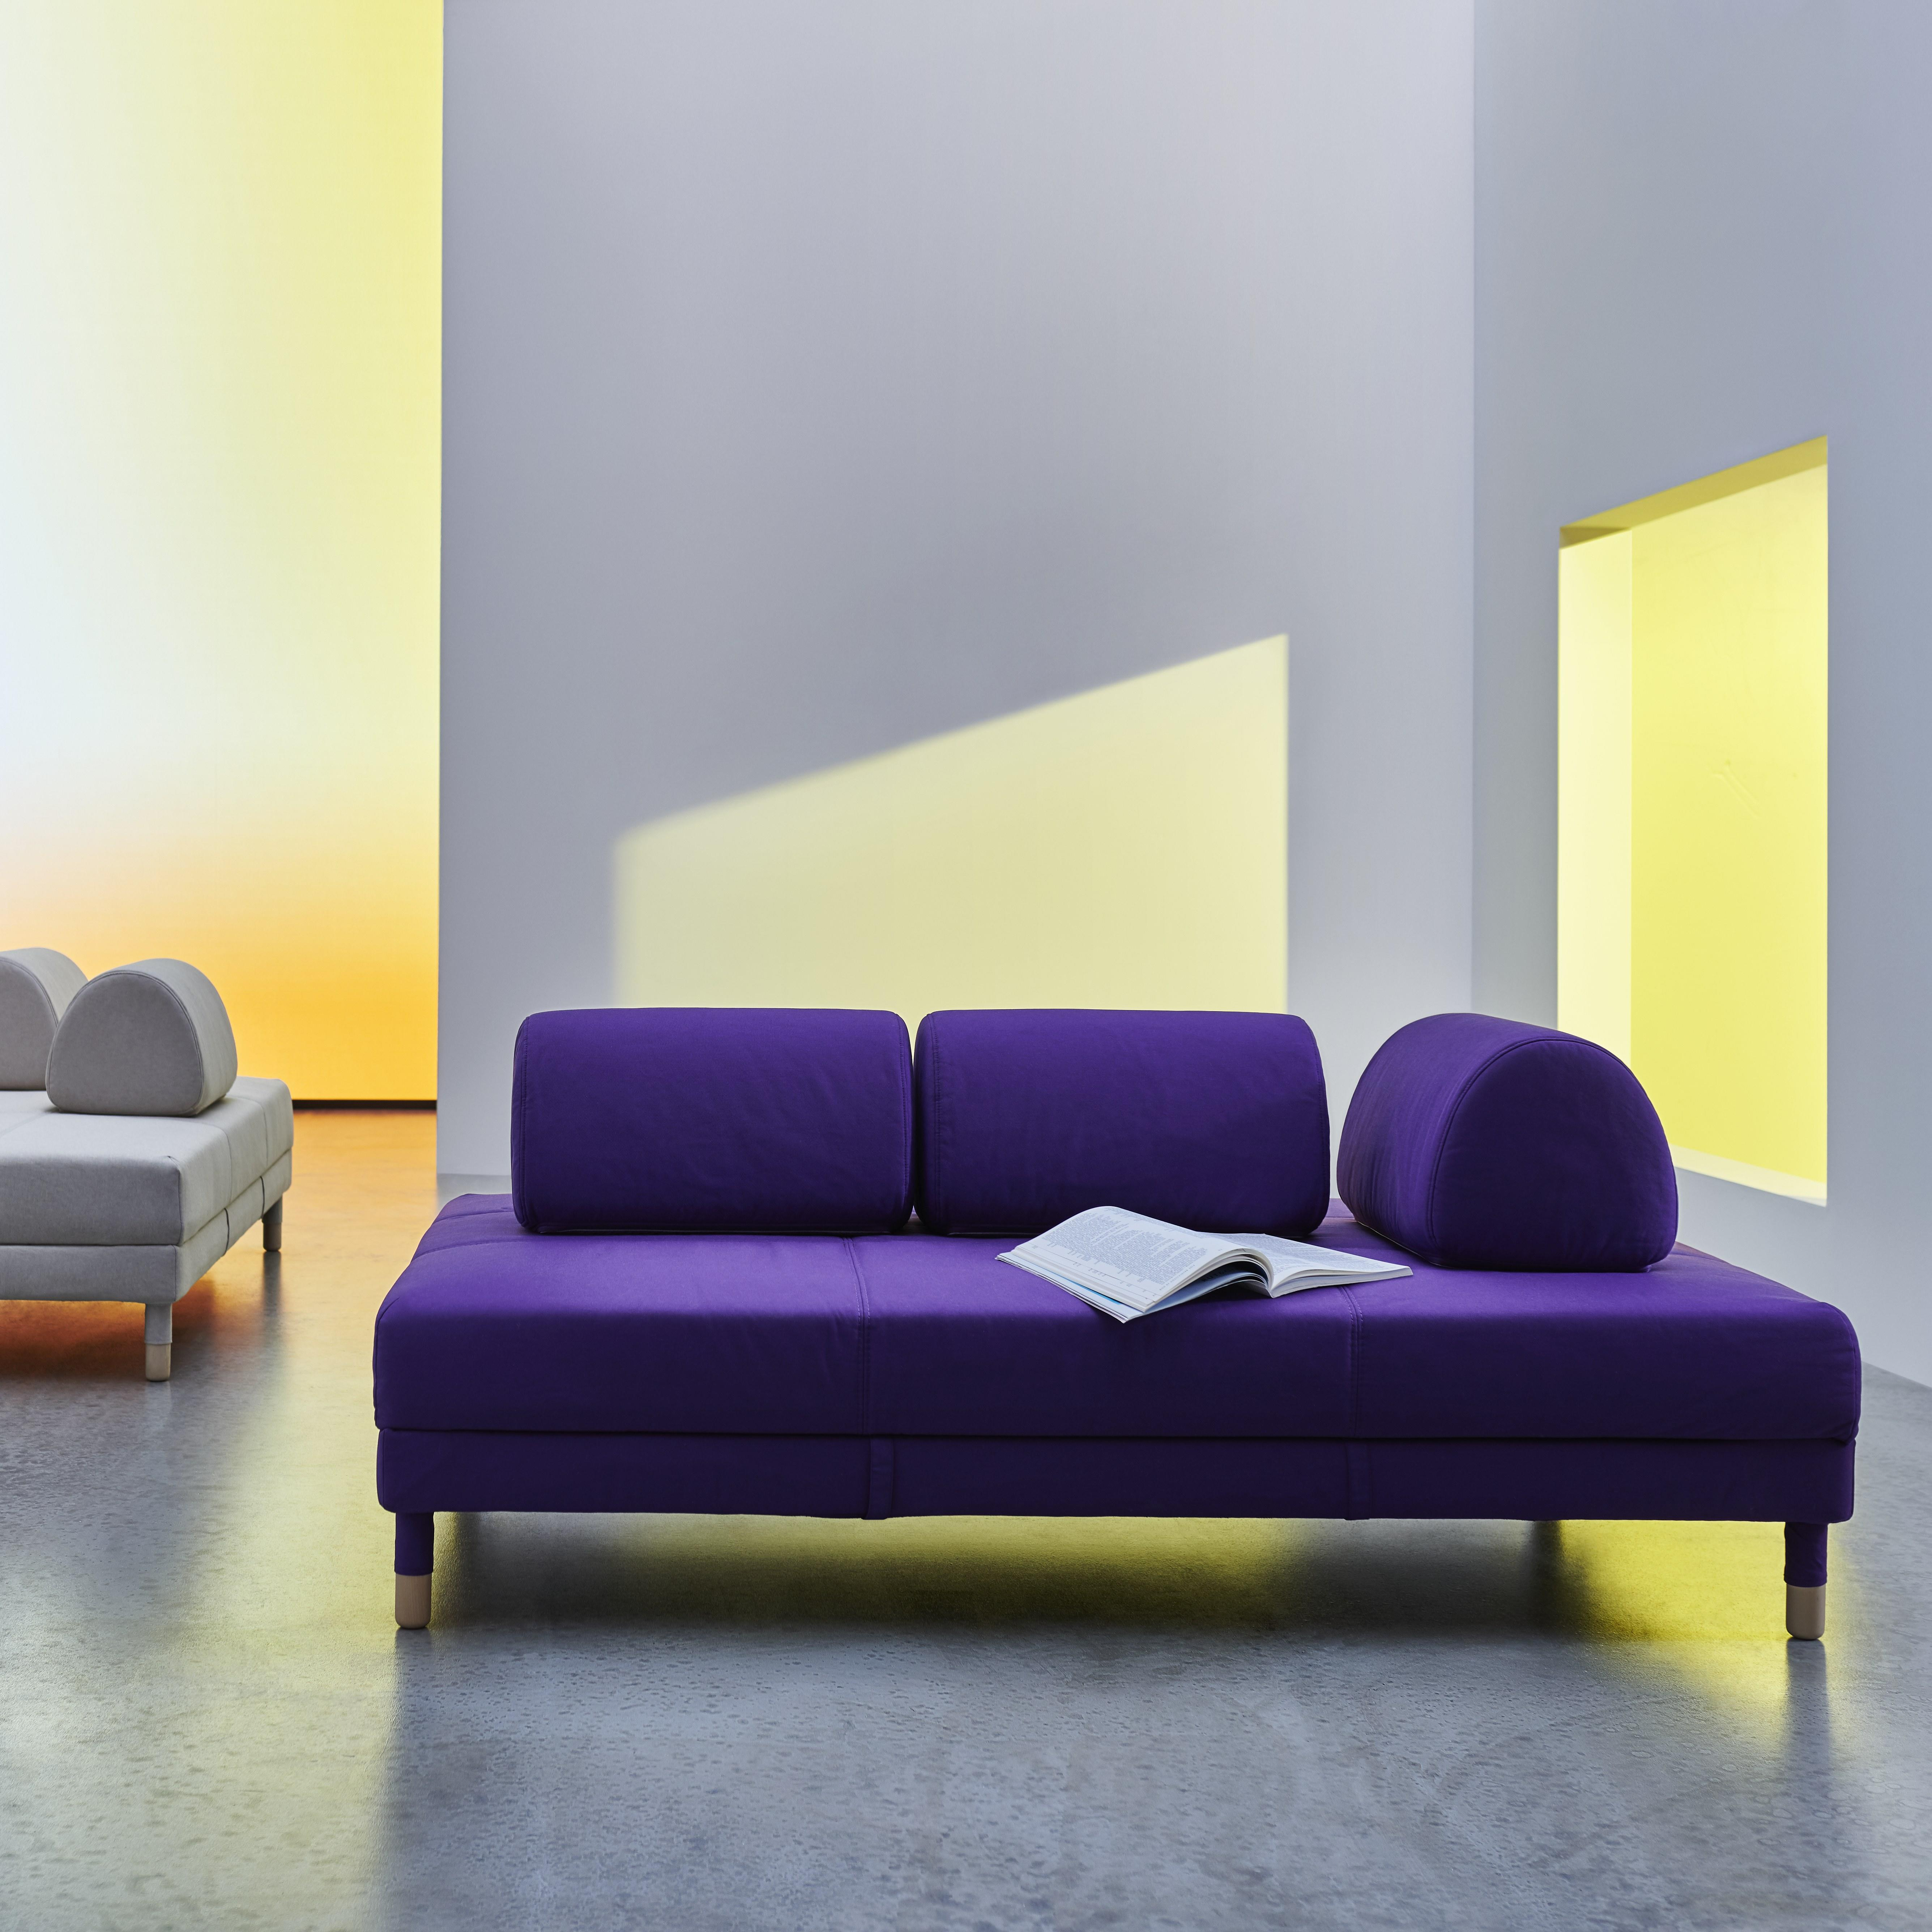 Surprising 11 Things We Cant Wait To Order From The New Ikea Catalog Bralicious Painted Fabric Chair Ideas Braliciousco